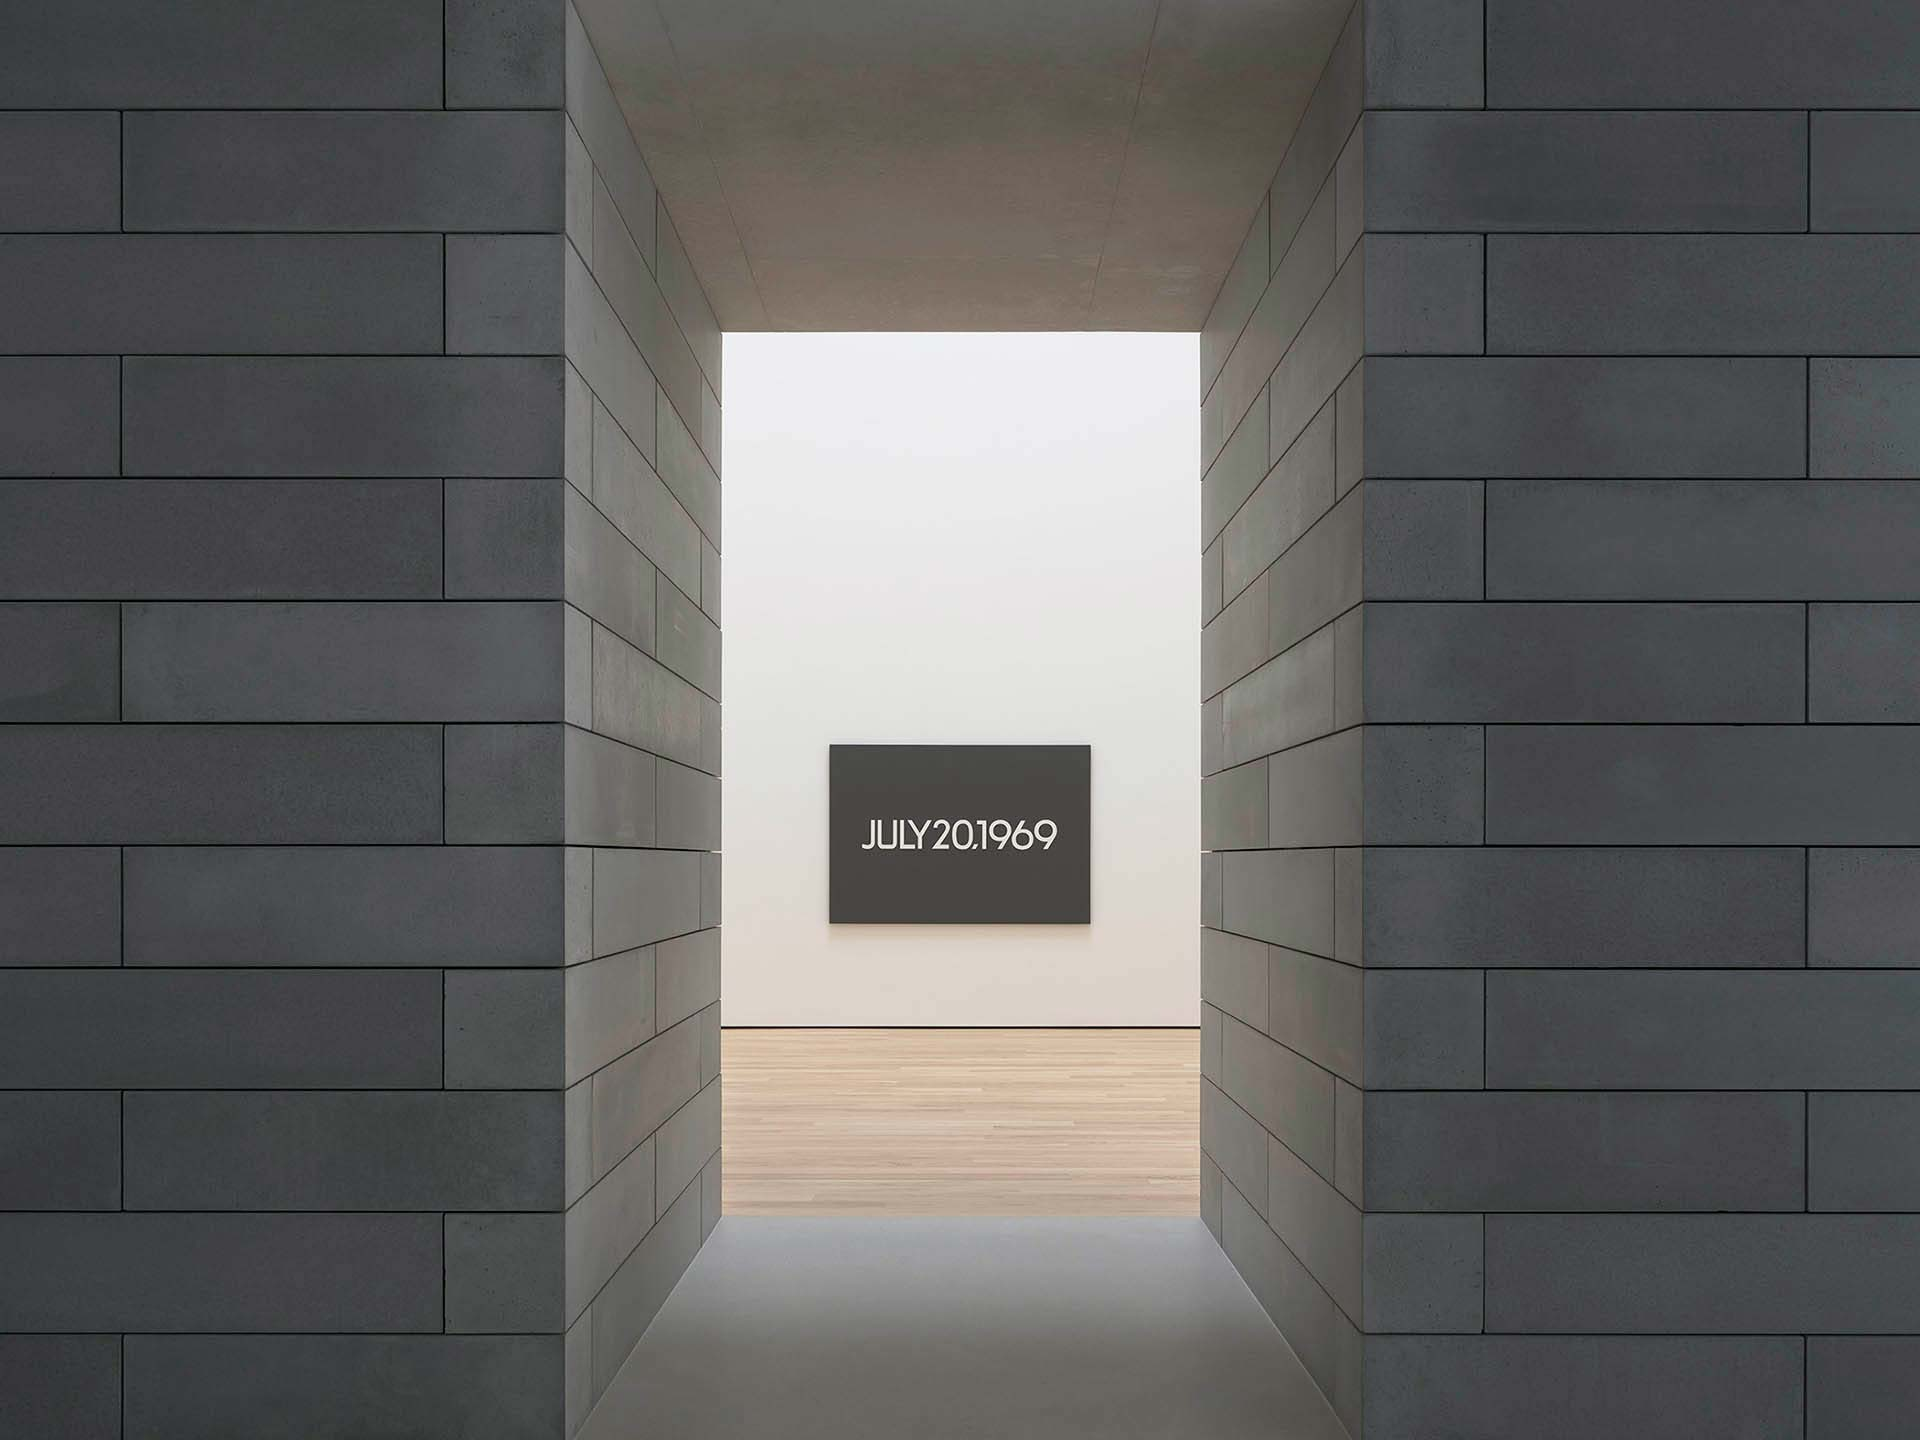 A painting by On Kawara, titled Moon Landing, dated 1969.